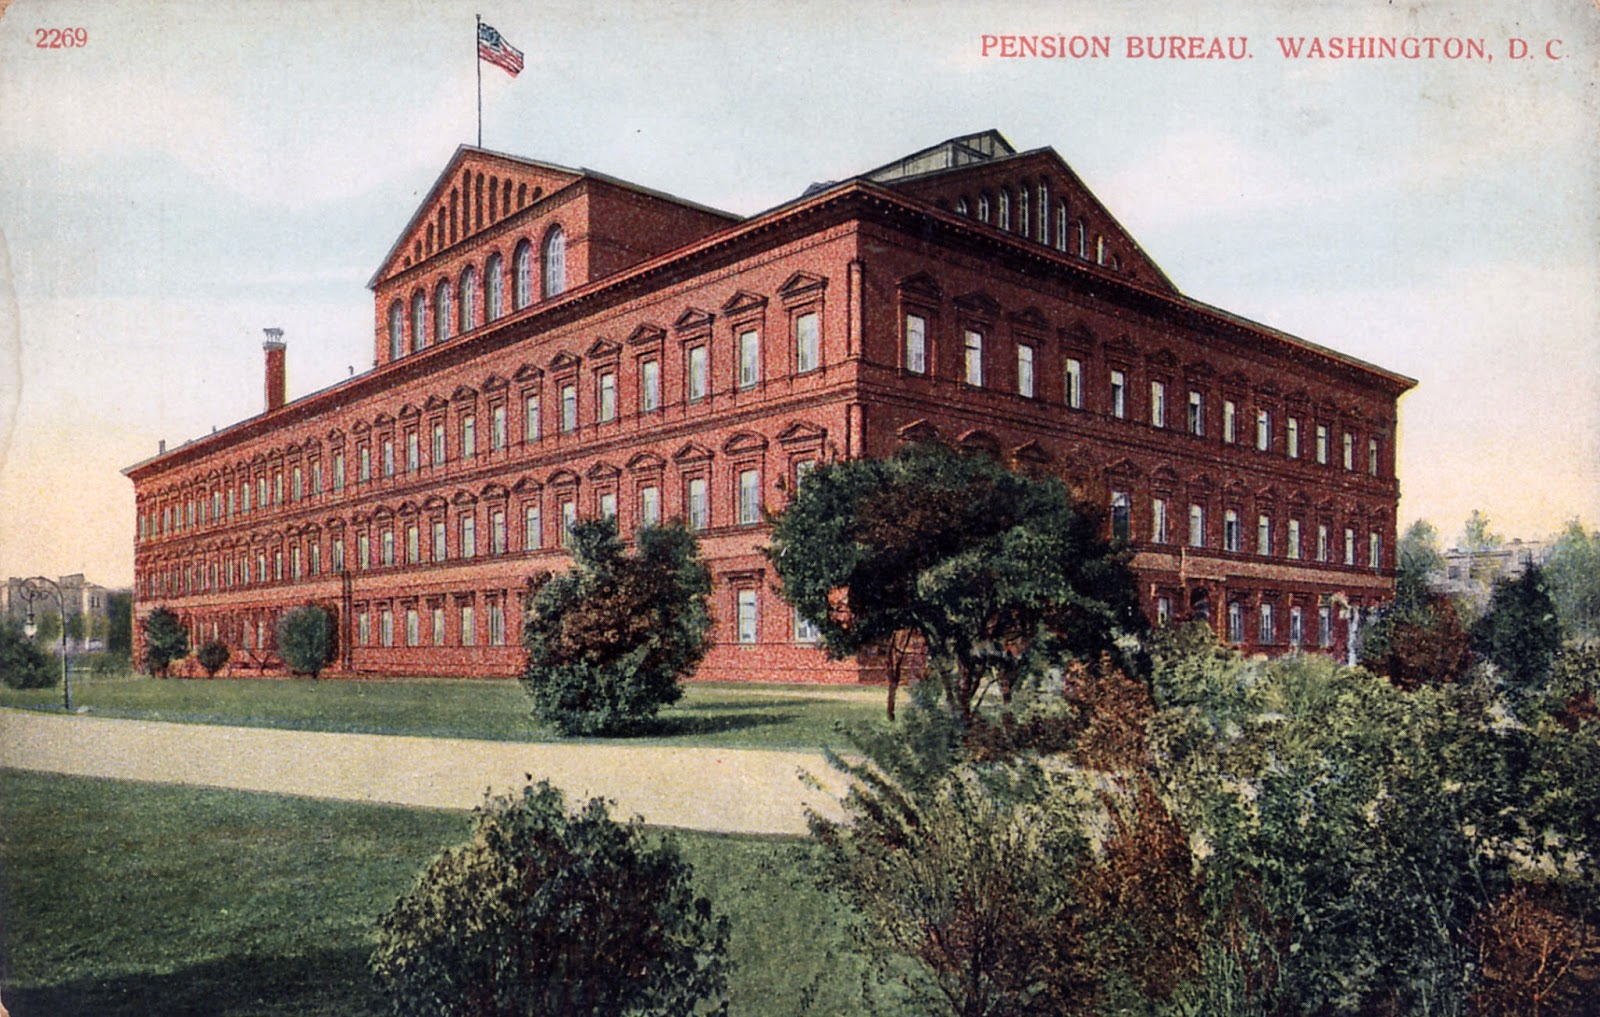 Postcard image of Pension Building